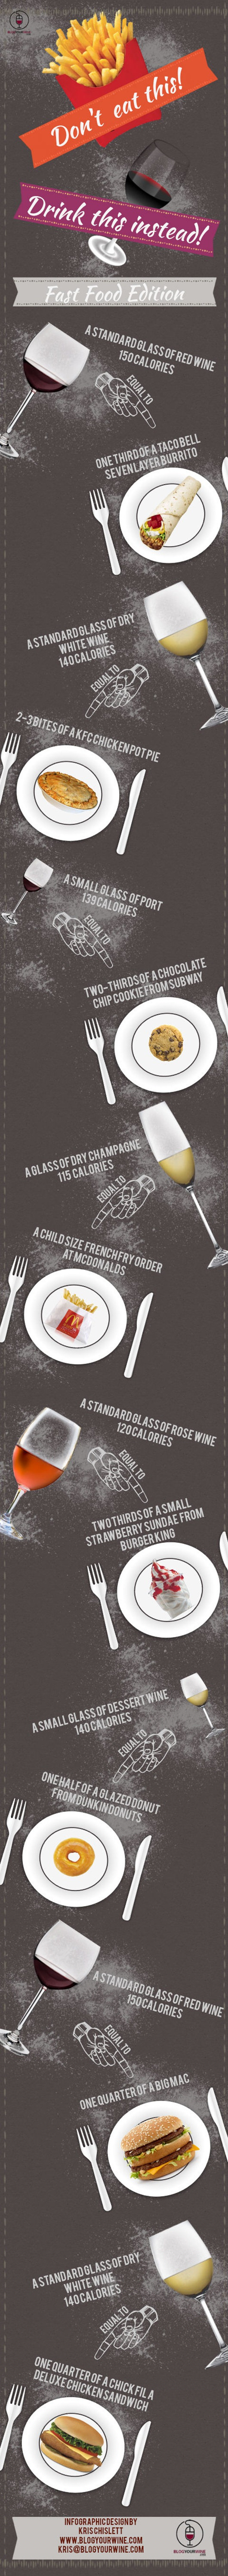 Fast-Food-and-Wine-Infographic